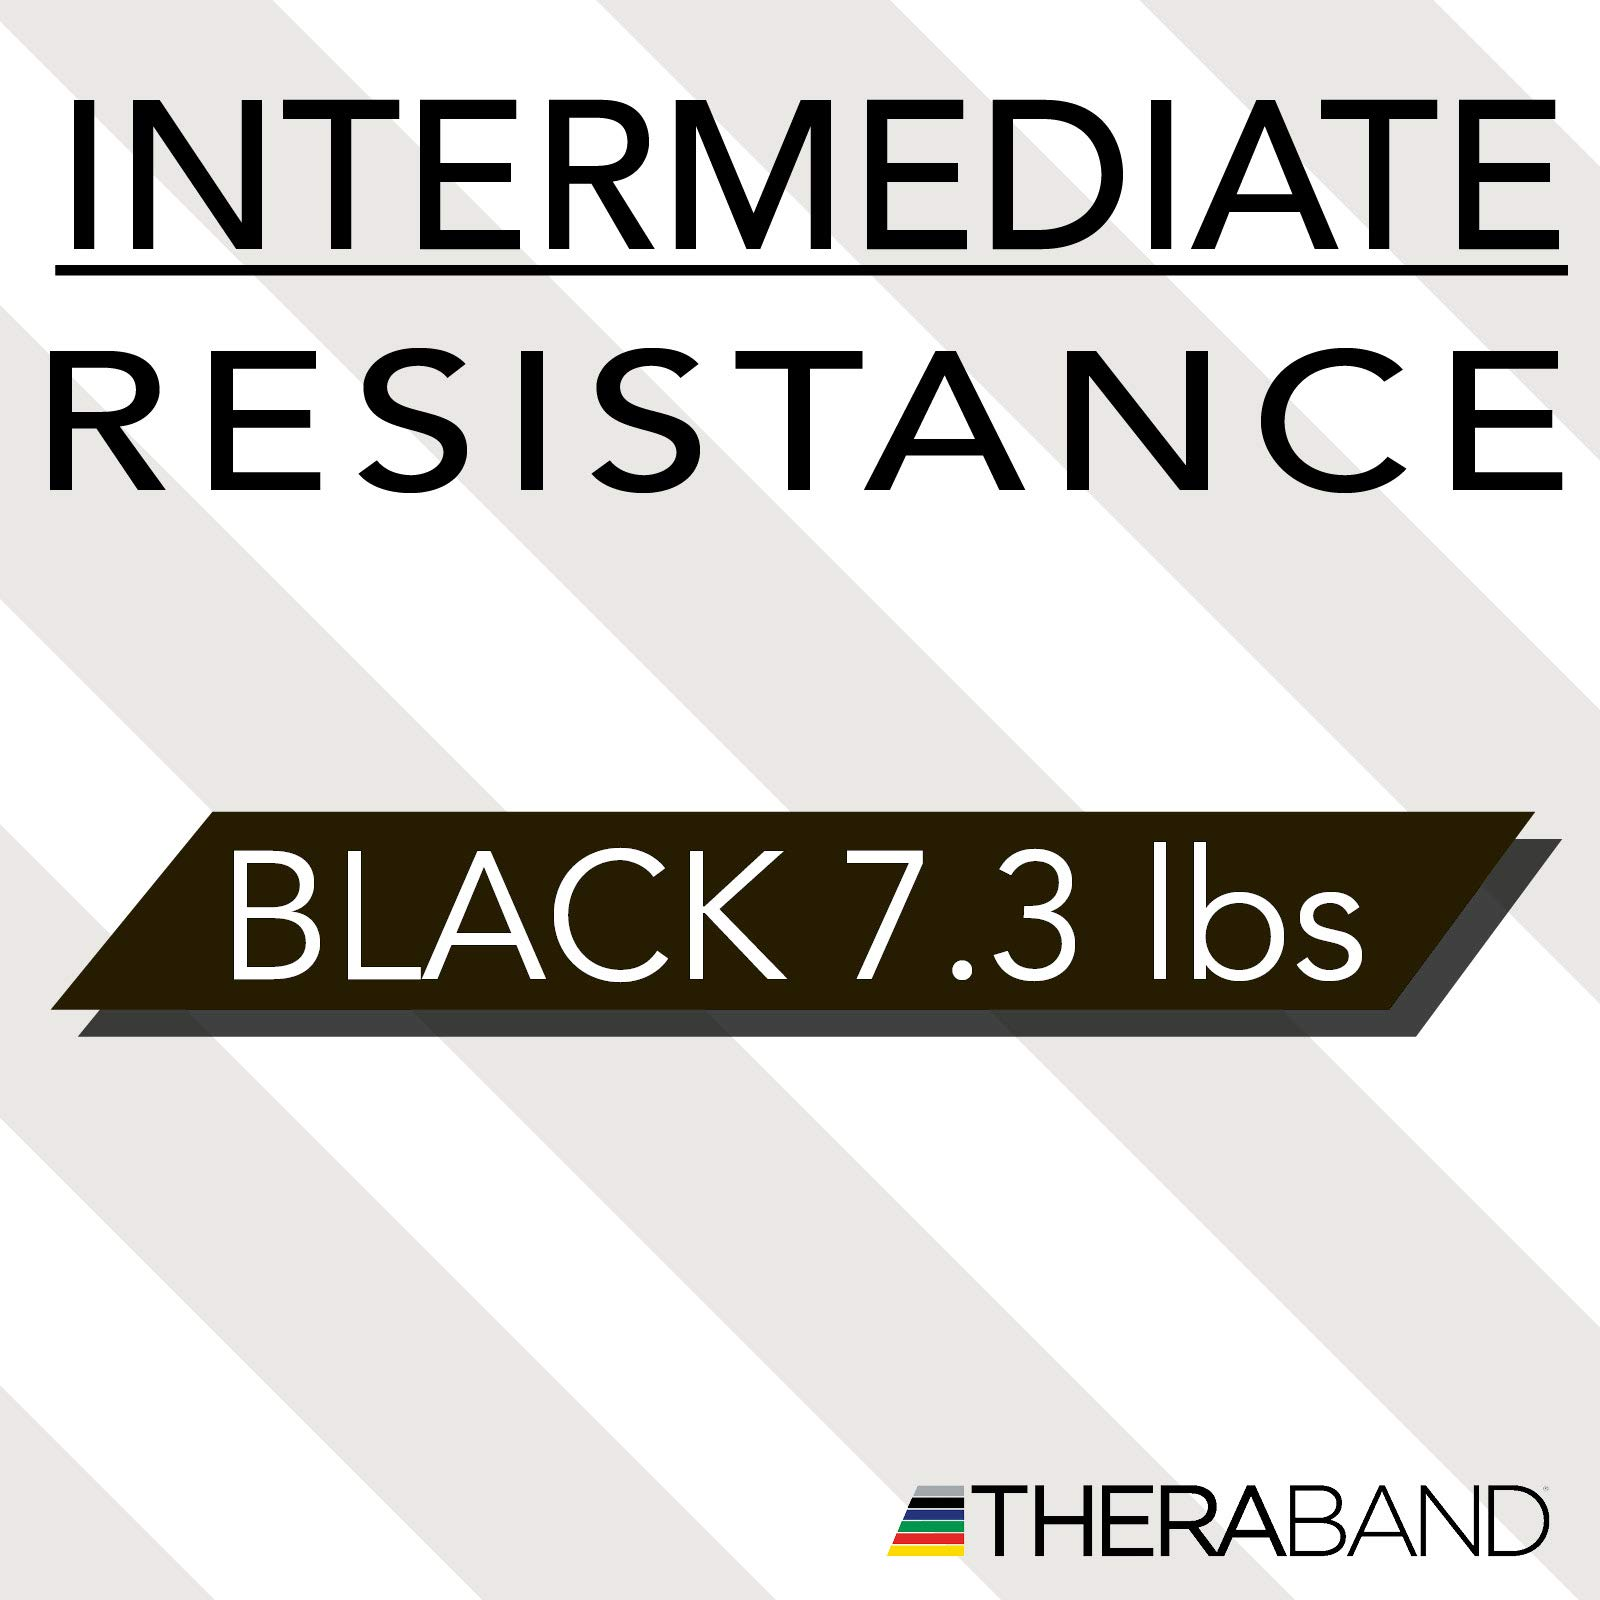 TheraBand Resistance Bands, 6 Yard Roll Professional Latex Elastic Band For Upper & Lower Body, Core Exercise, Physical Therapy, Pilates, Home Workouts, Rehab, Black, Special Heavy, Advanced Level 1 by TheraBand (Image #8)